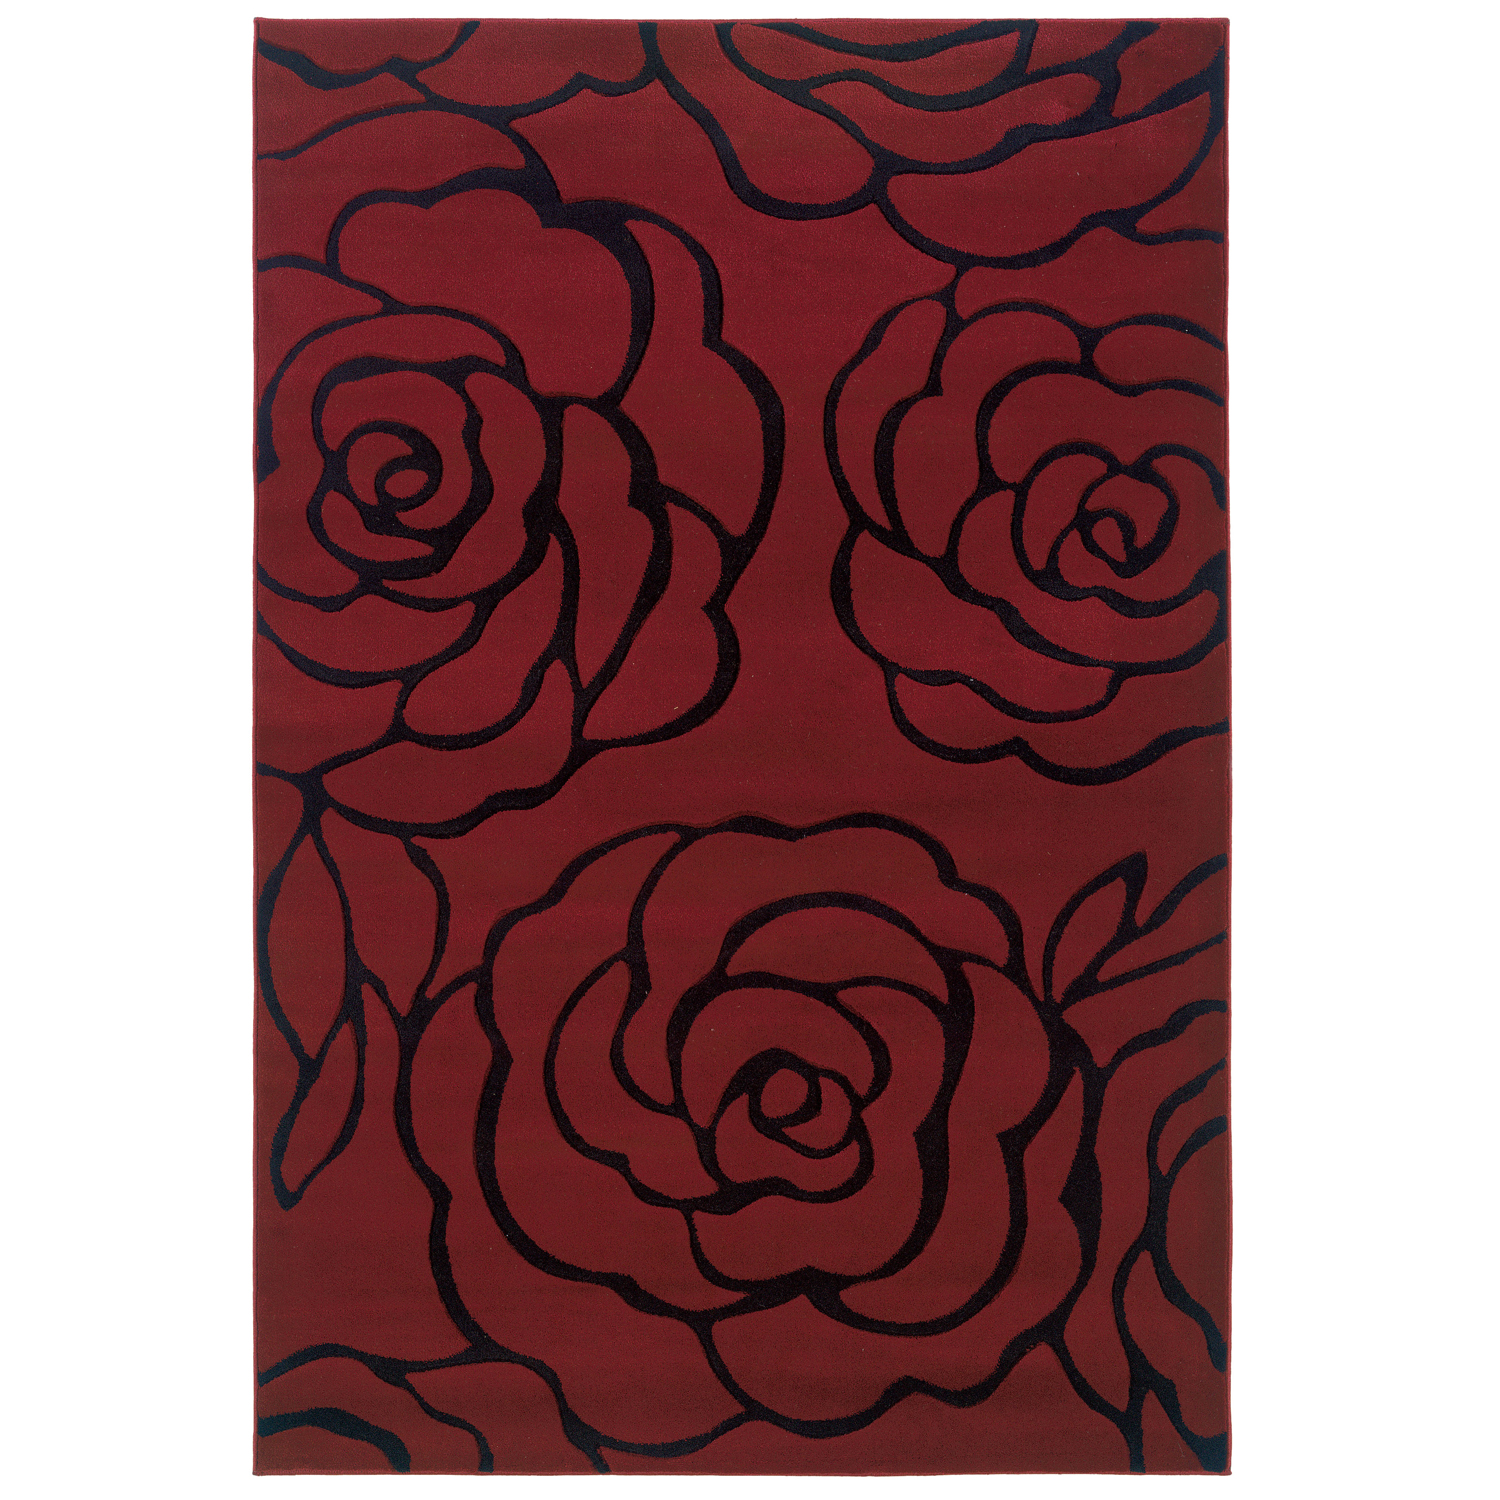 Milan Red/Black 5'X8' Area Rug, RED BLACK